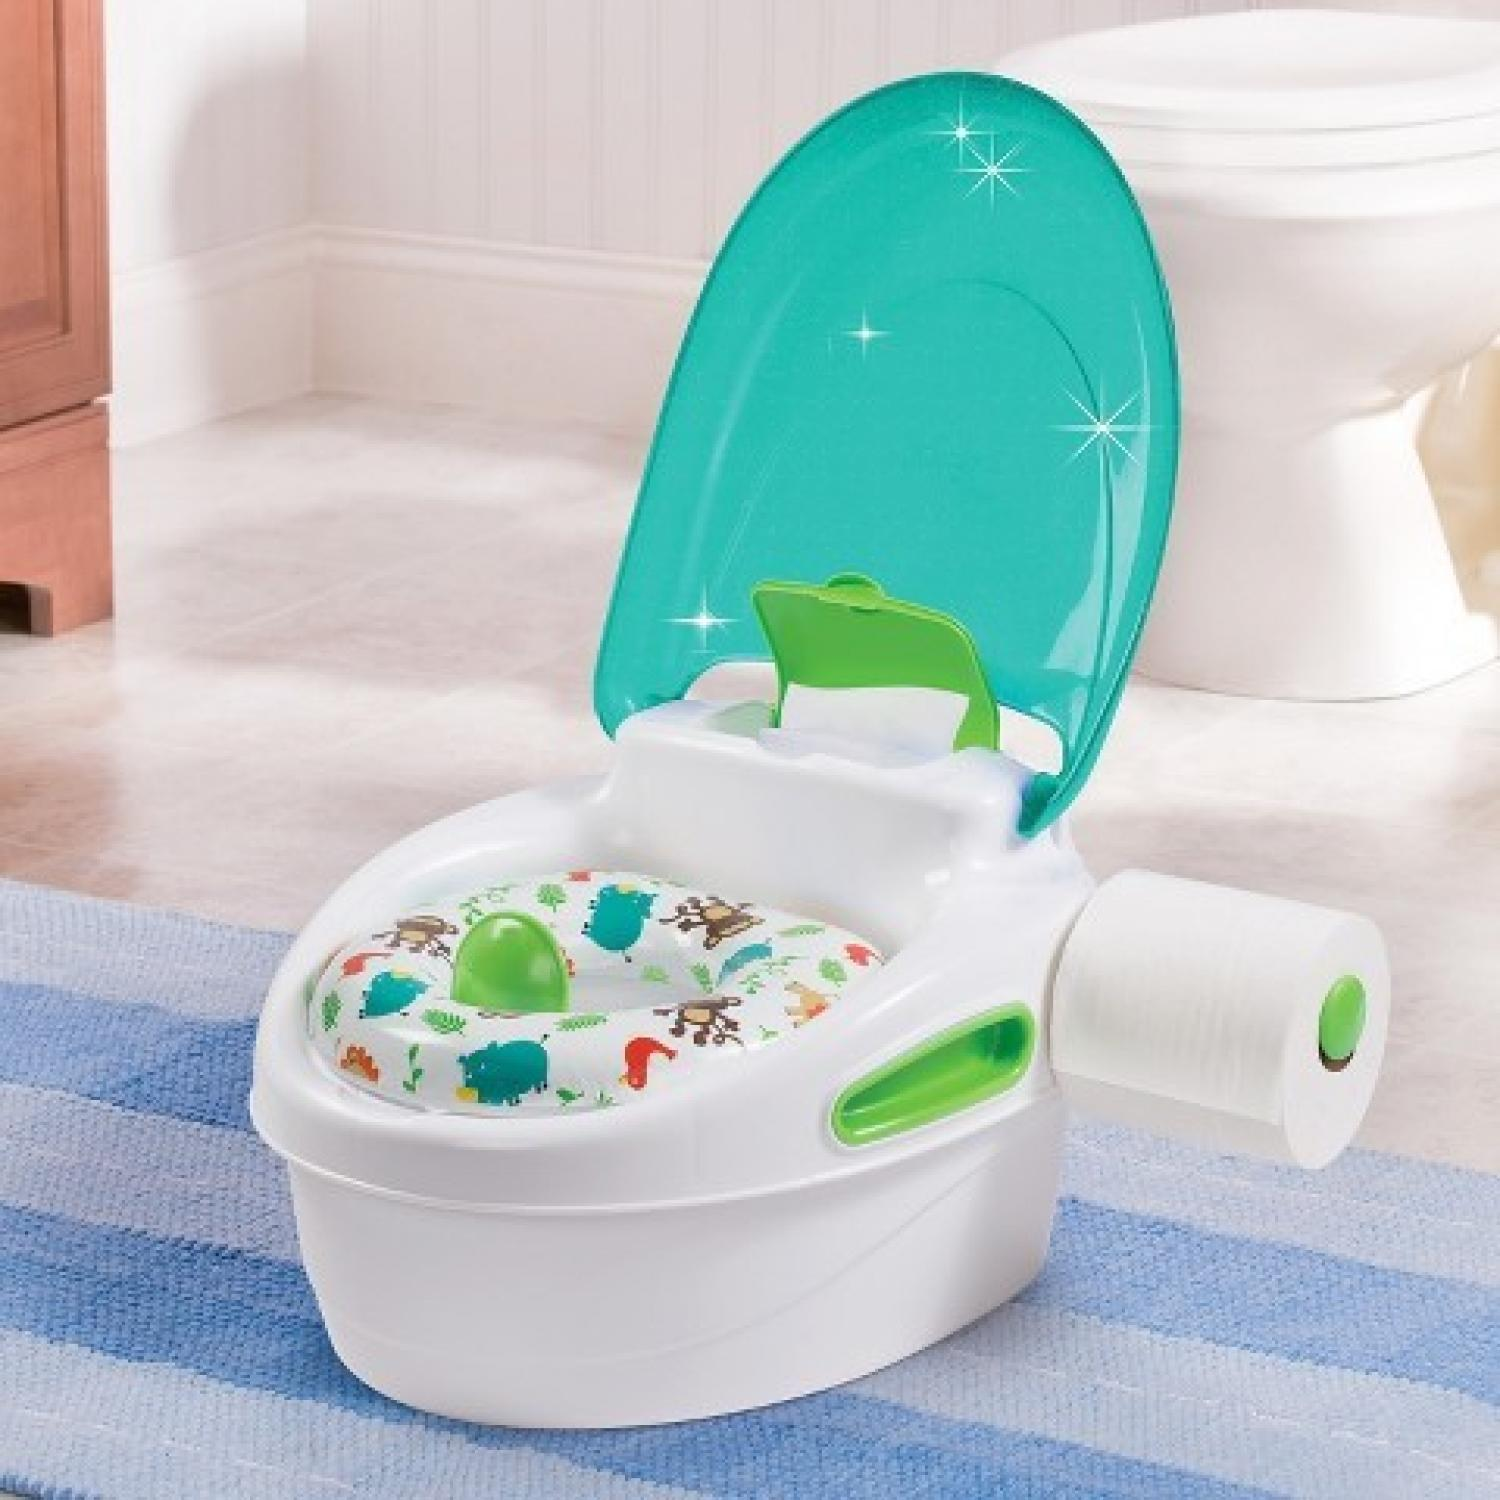 e3ebd59c835 Best Potty Training Products